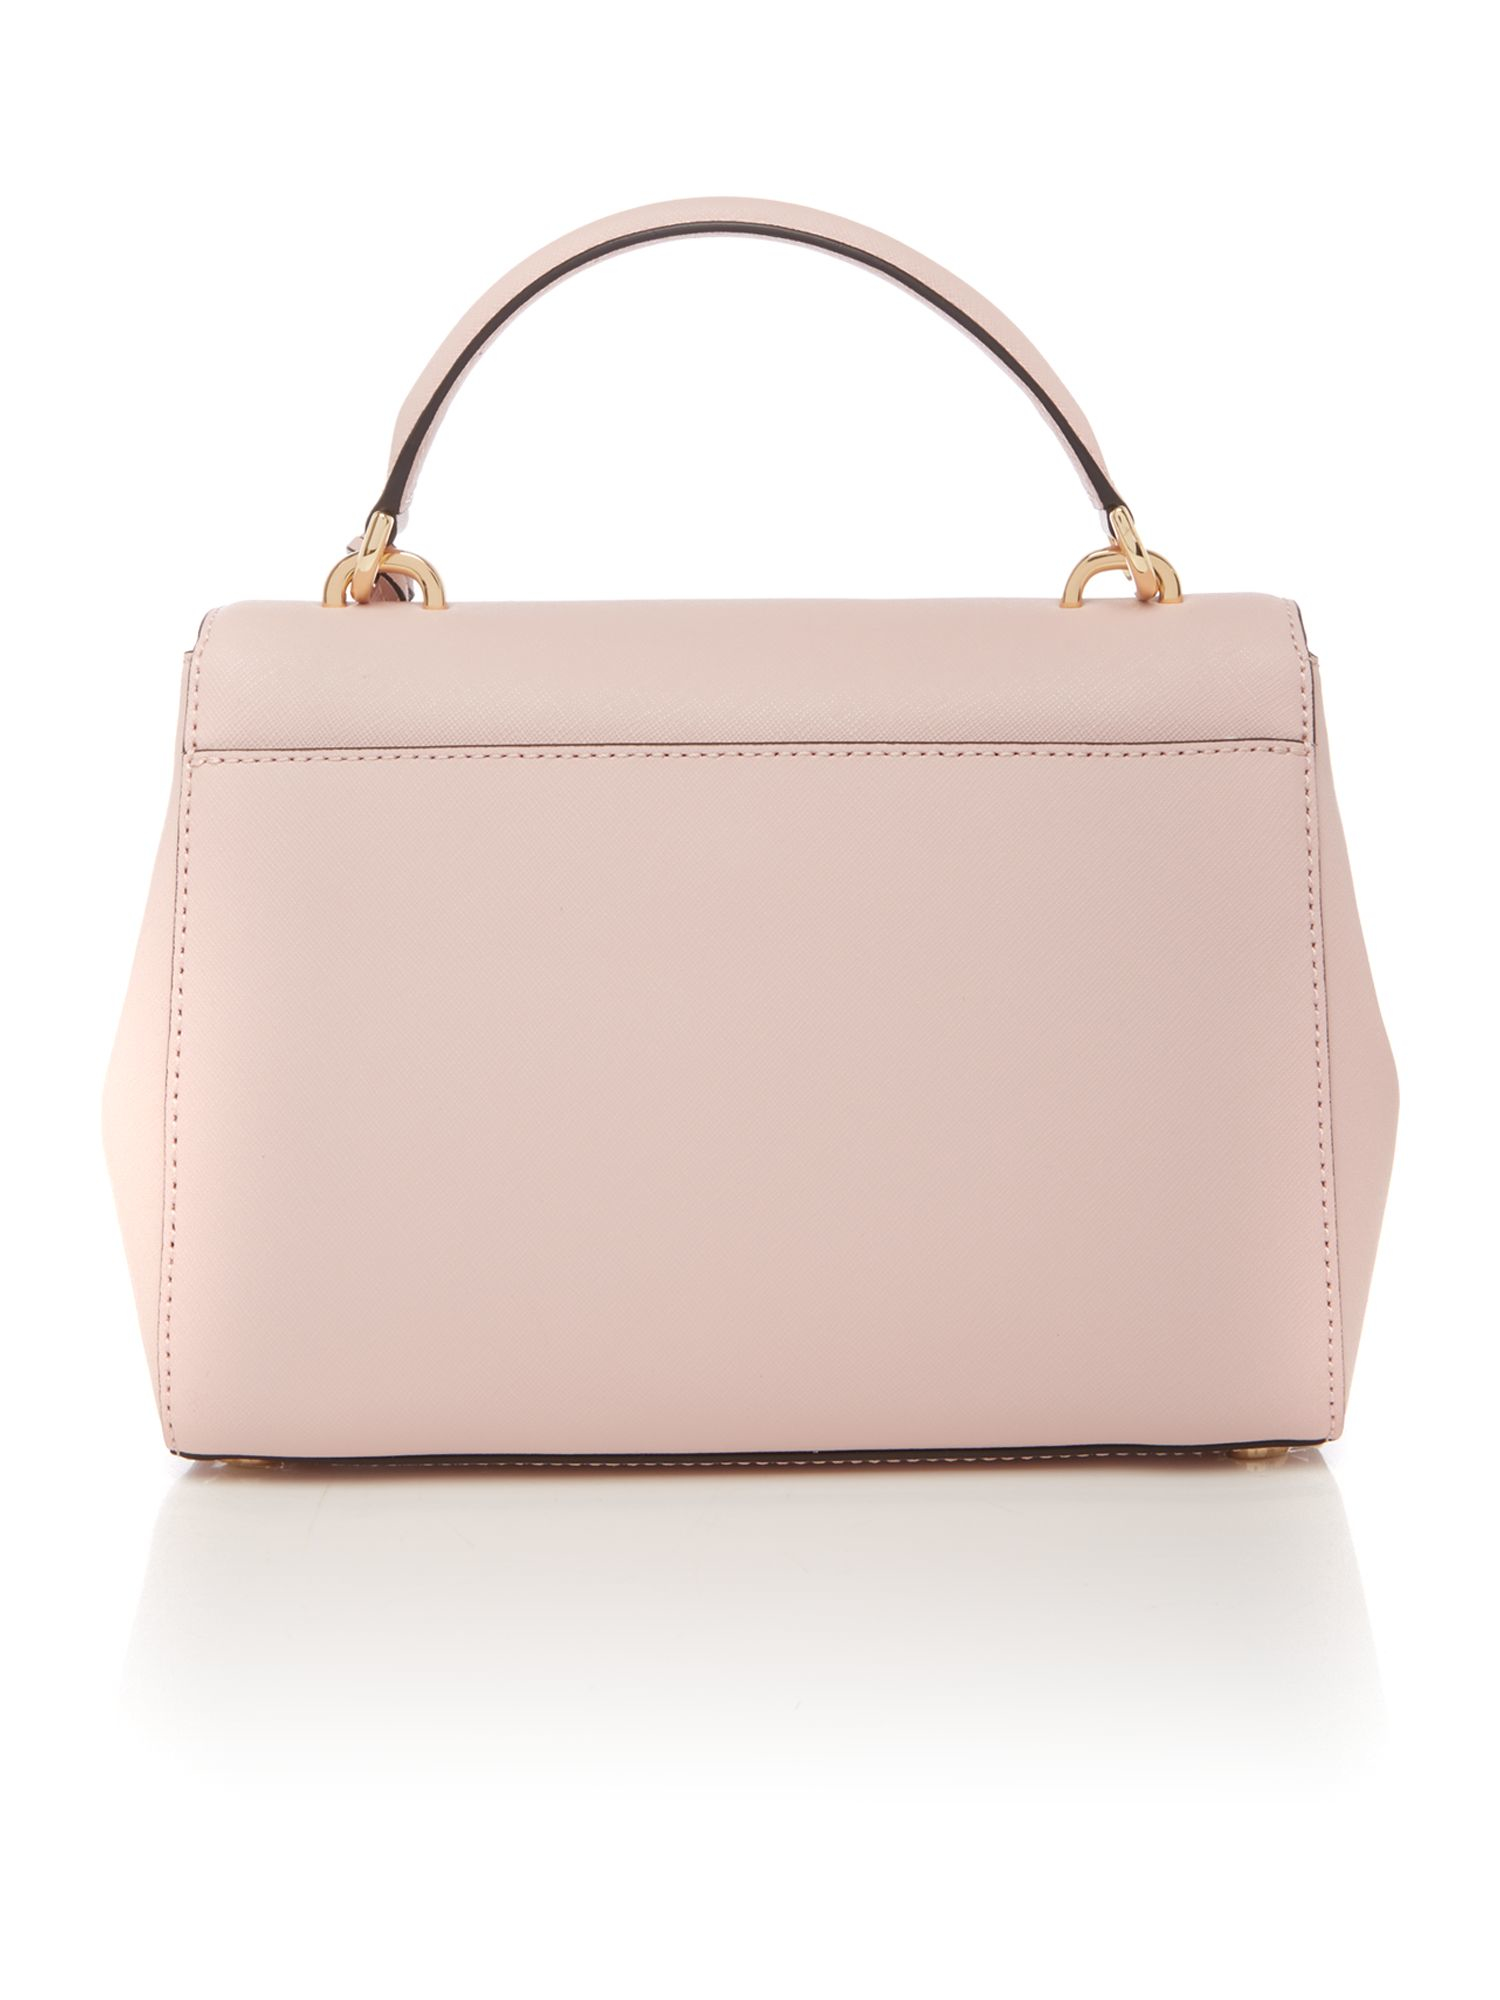 Michael Kors Ava Pink Small Satchel Bag In Pink Lyst